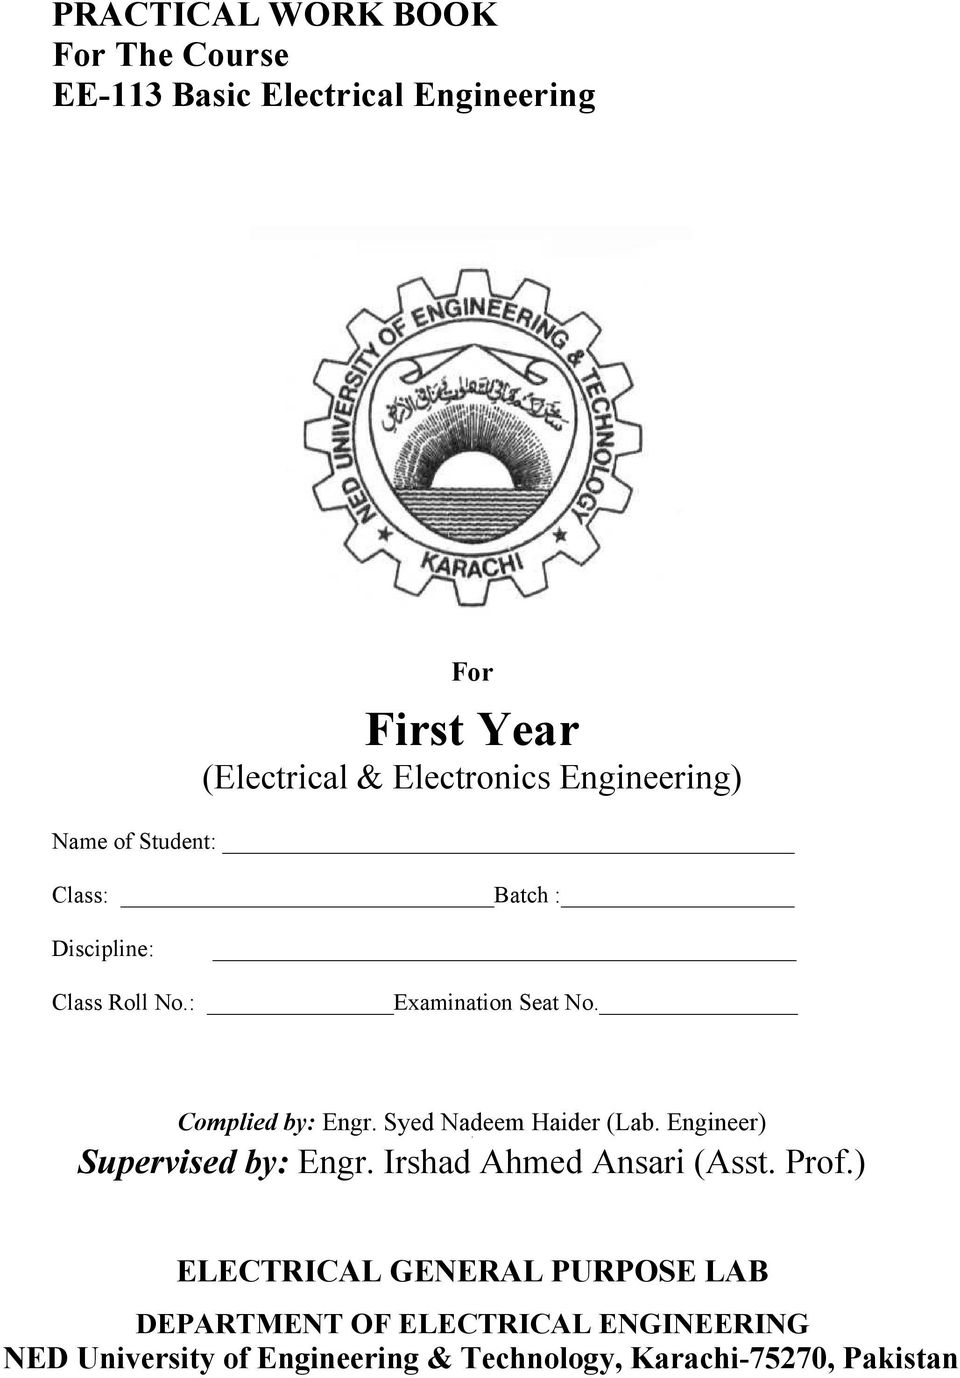 First Year Electrical Electronics Engineering Pdf Circuit Schematic Symbols Lessons In Electric Circuits Volume V Complied By Engr Syed Nadeem Haider Lab Engineer Supervised